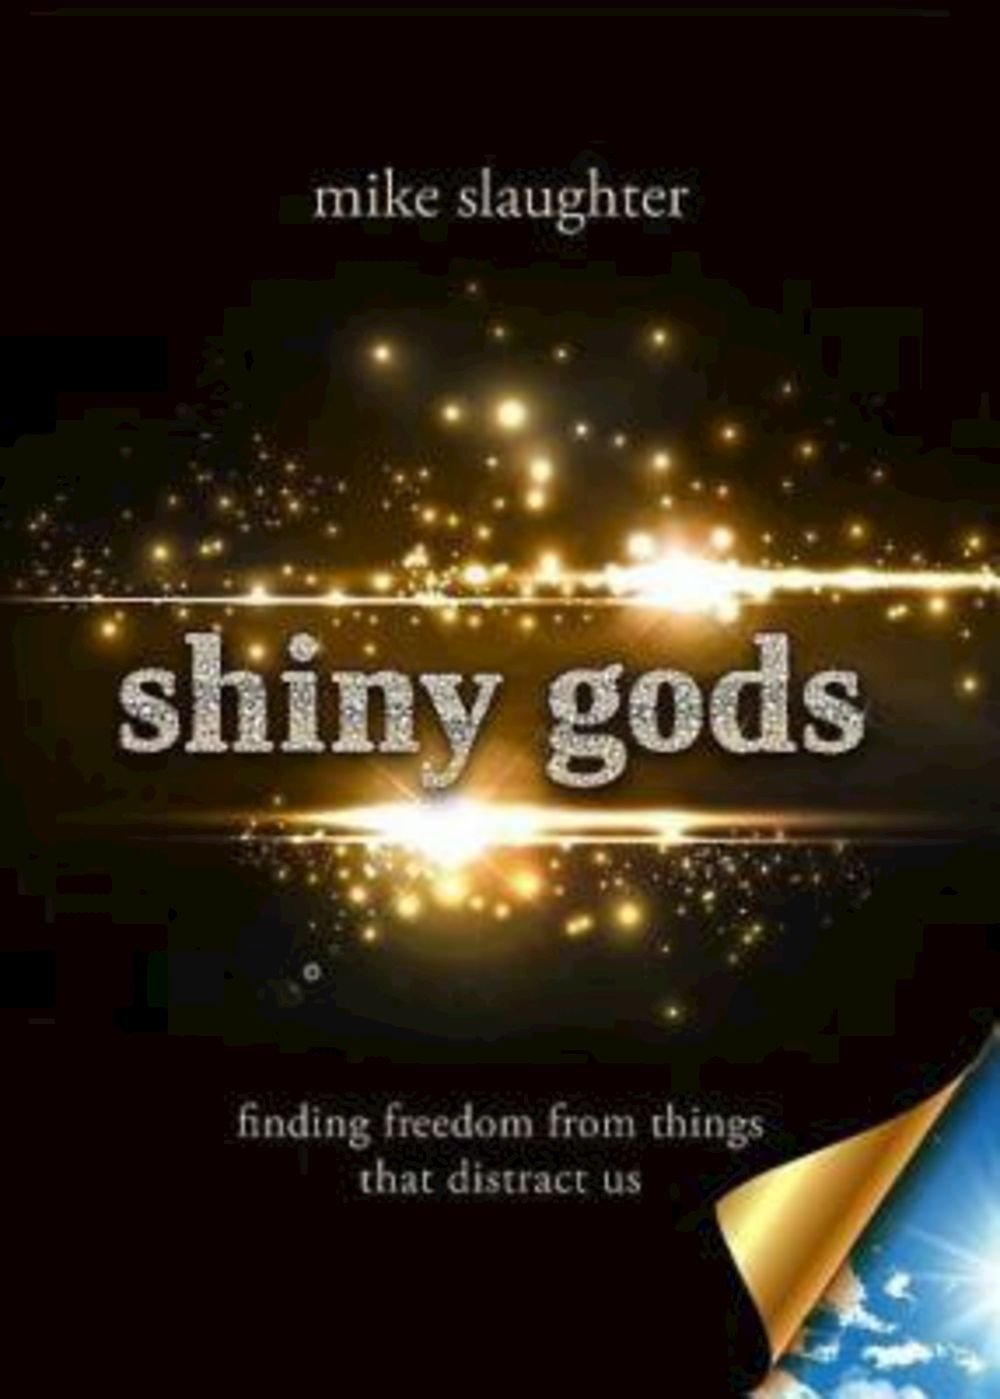 shiny gods: finding freedom from things that distract us (first)